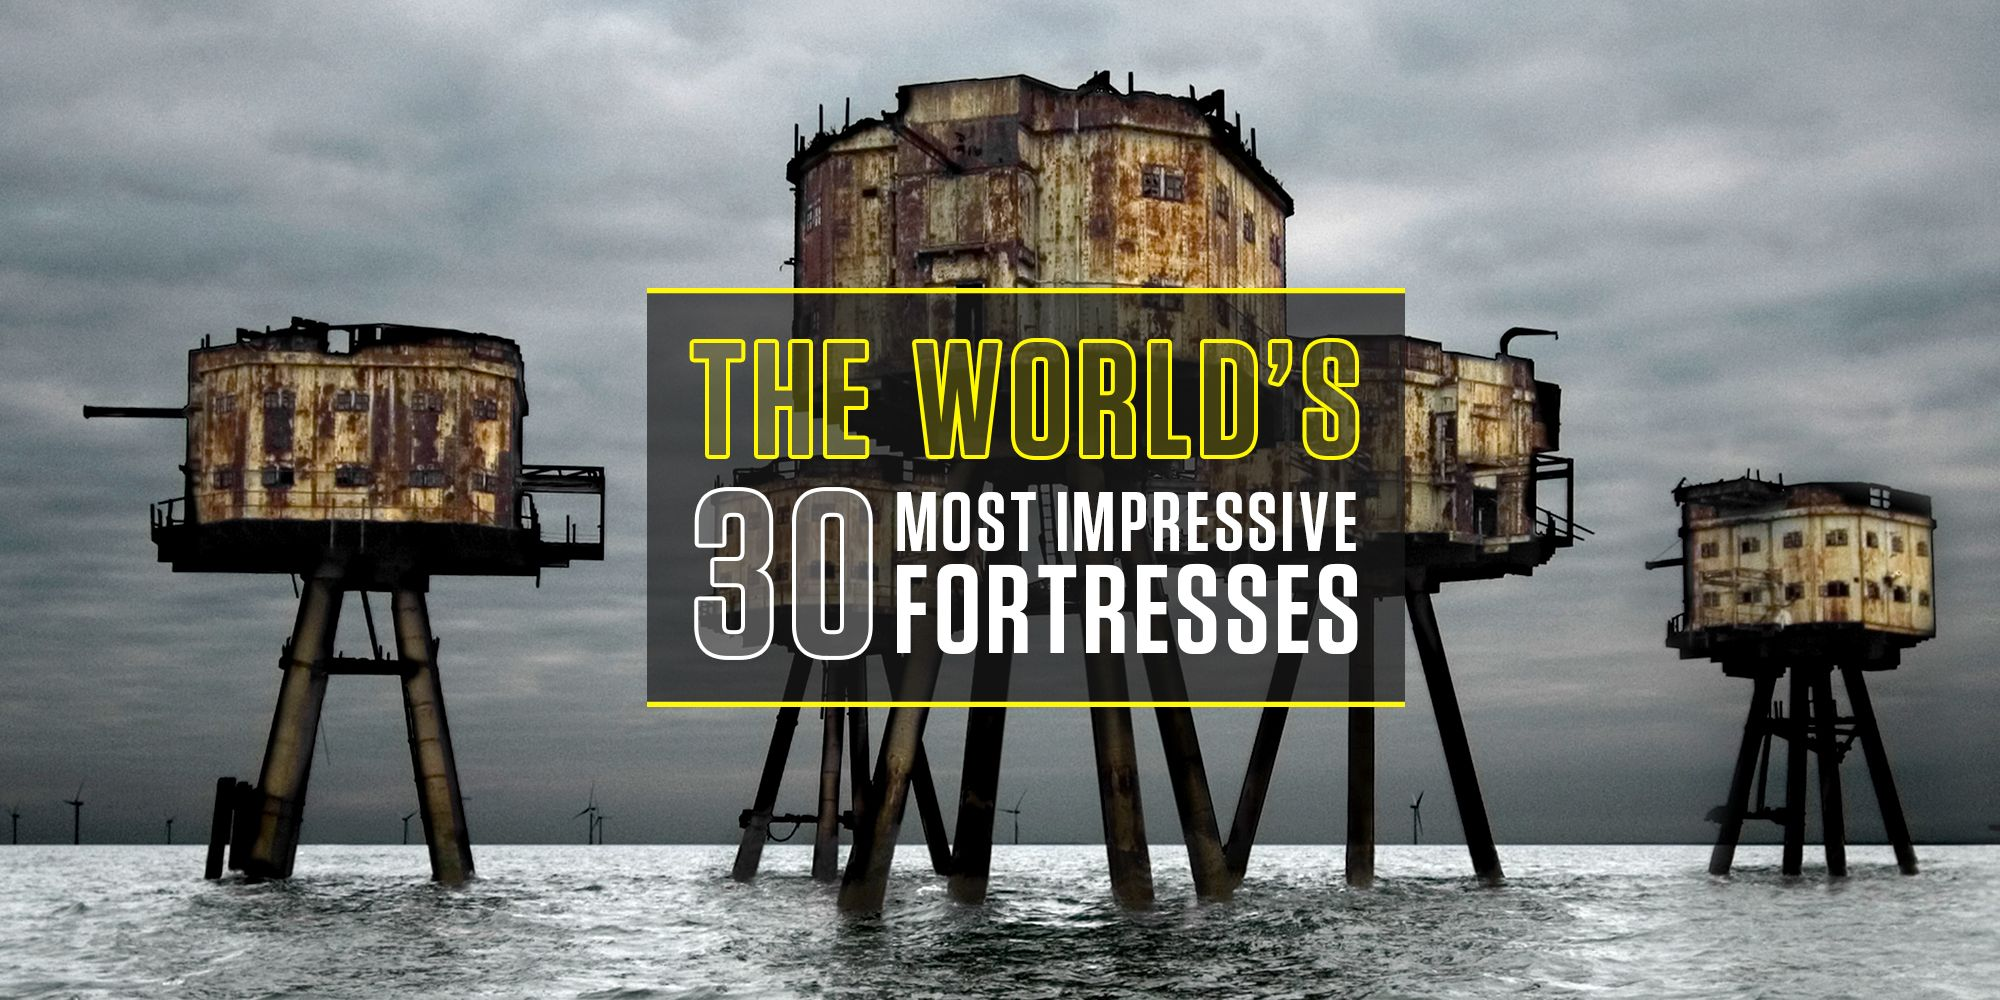 The World's 30 Most Impressive Fortresses